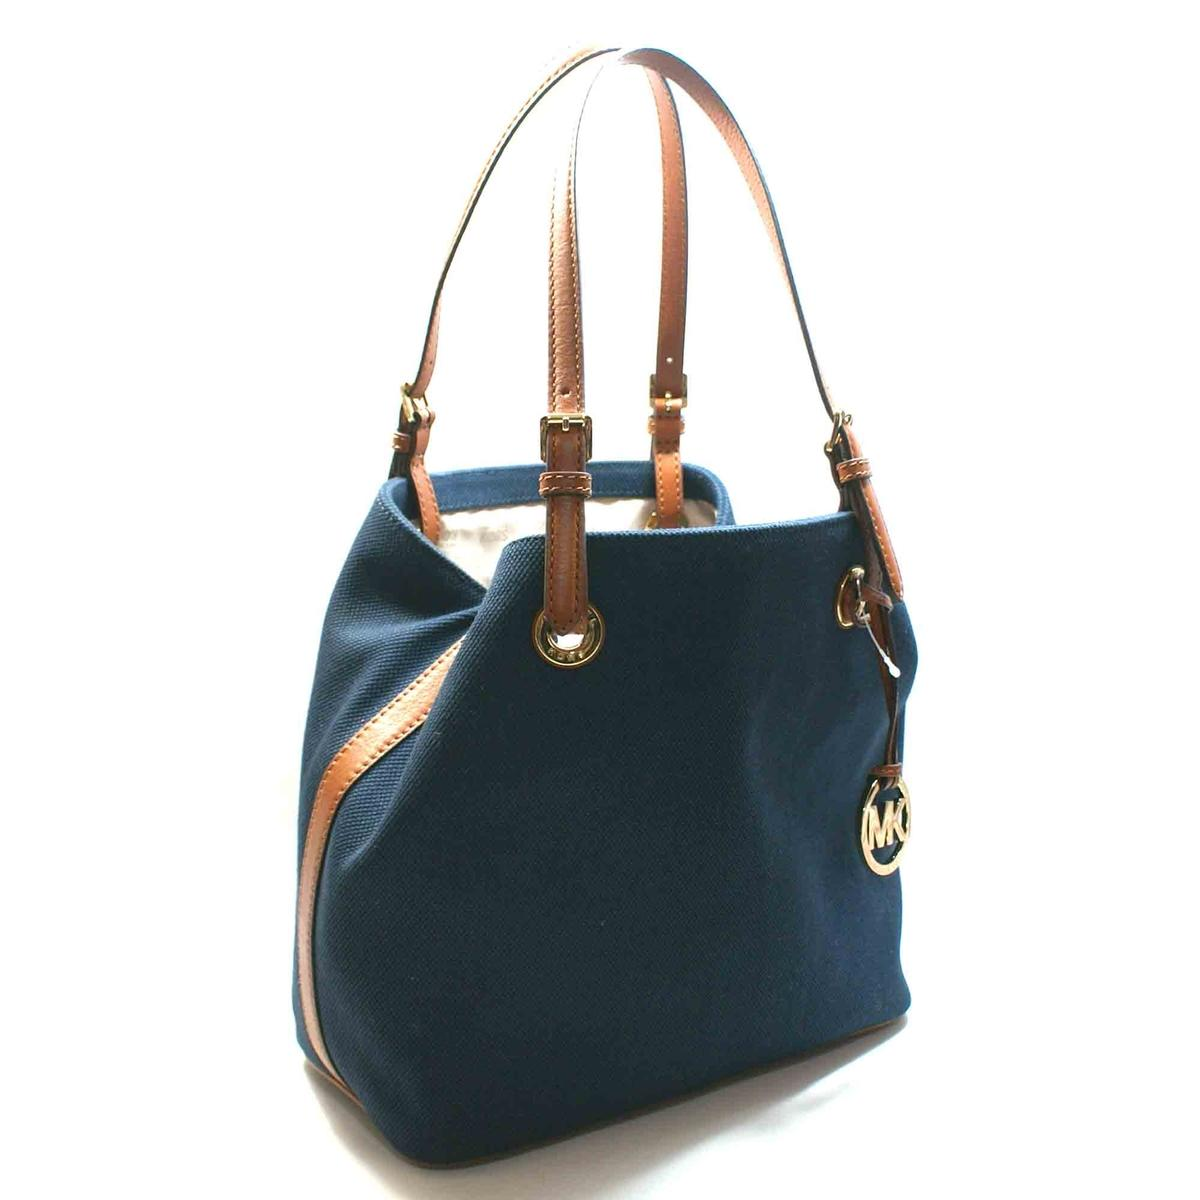 d4758e60a5 Home · Michael Kors · Jet Set Canvas Grab Tote Bag Navy Blue. CLICK  THUMBNAIL TO ZOOM. Found ...